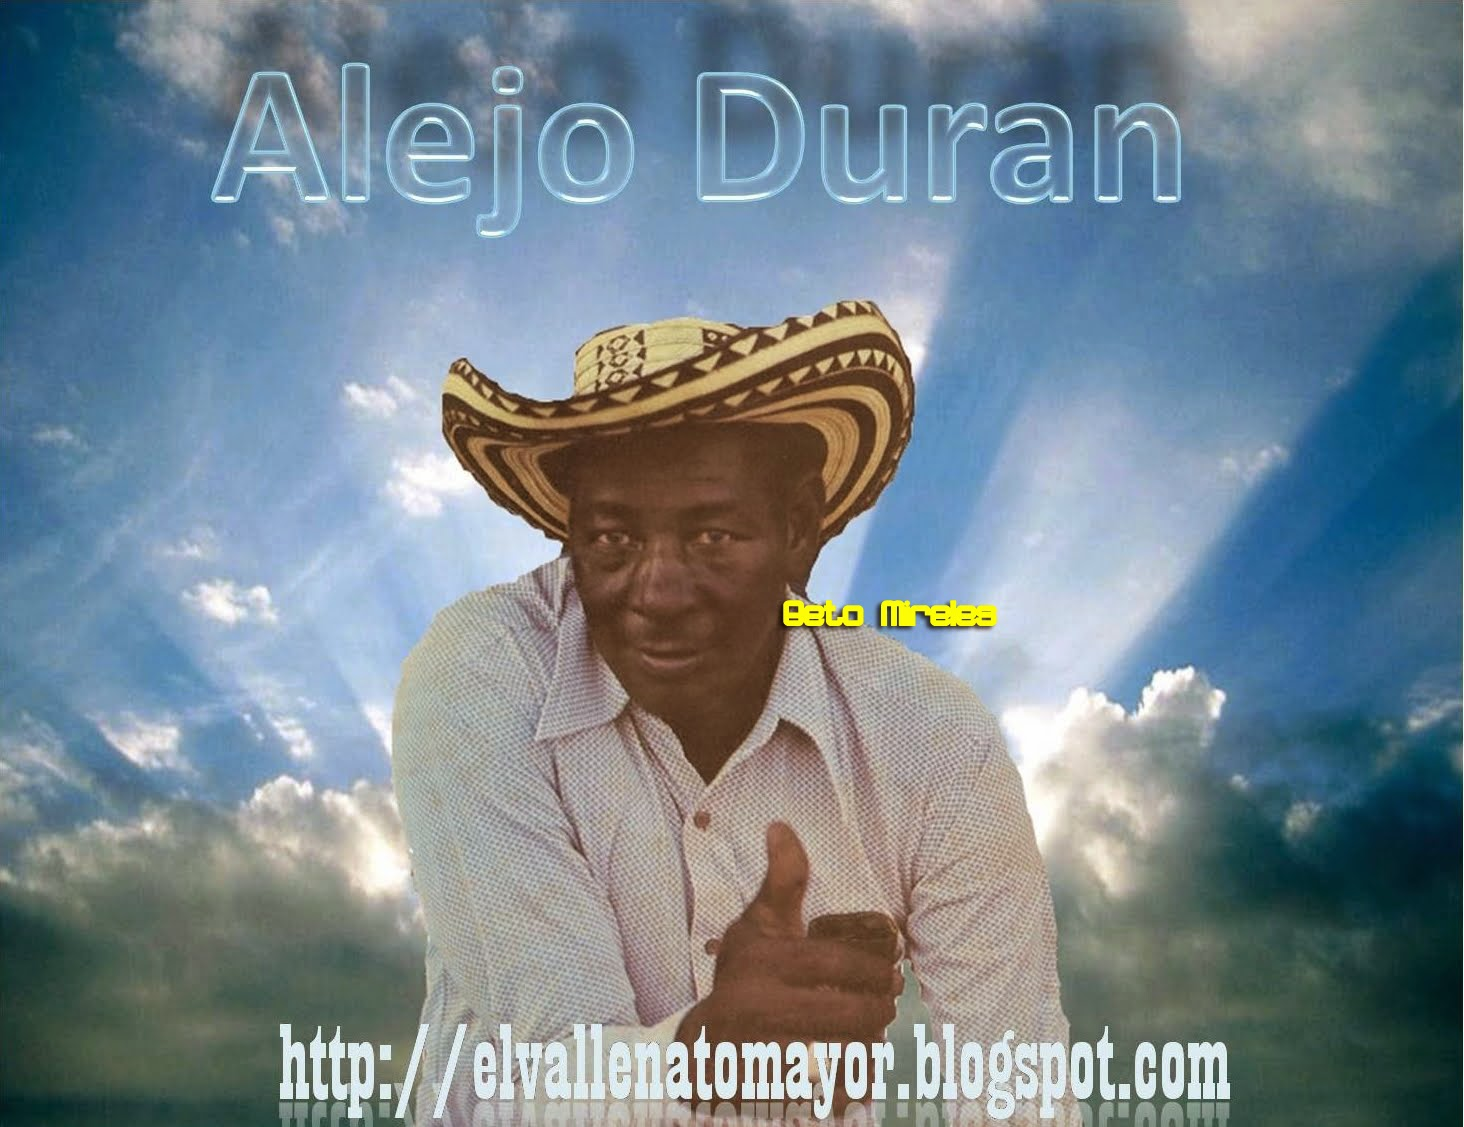 Alejo Duran El Vallenato Mayor